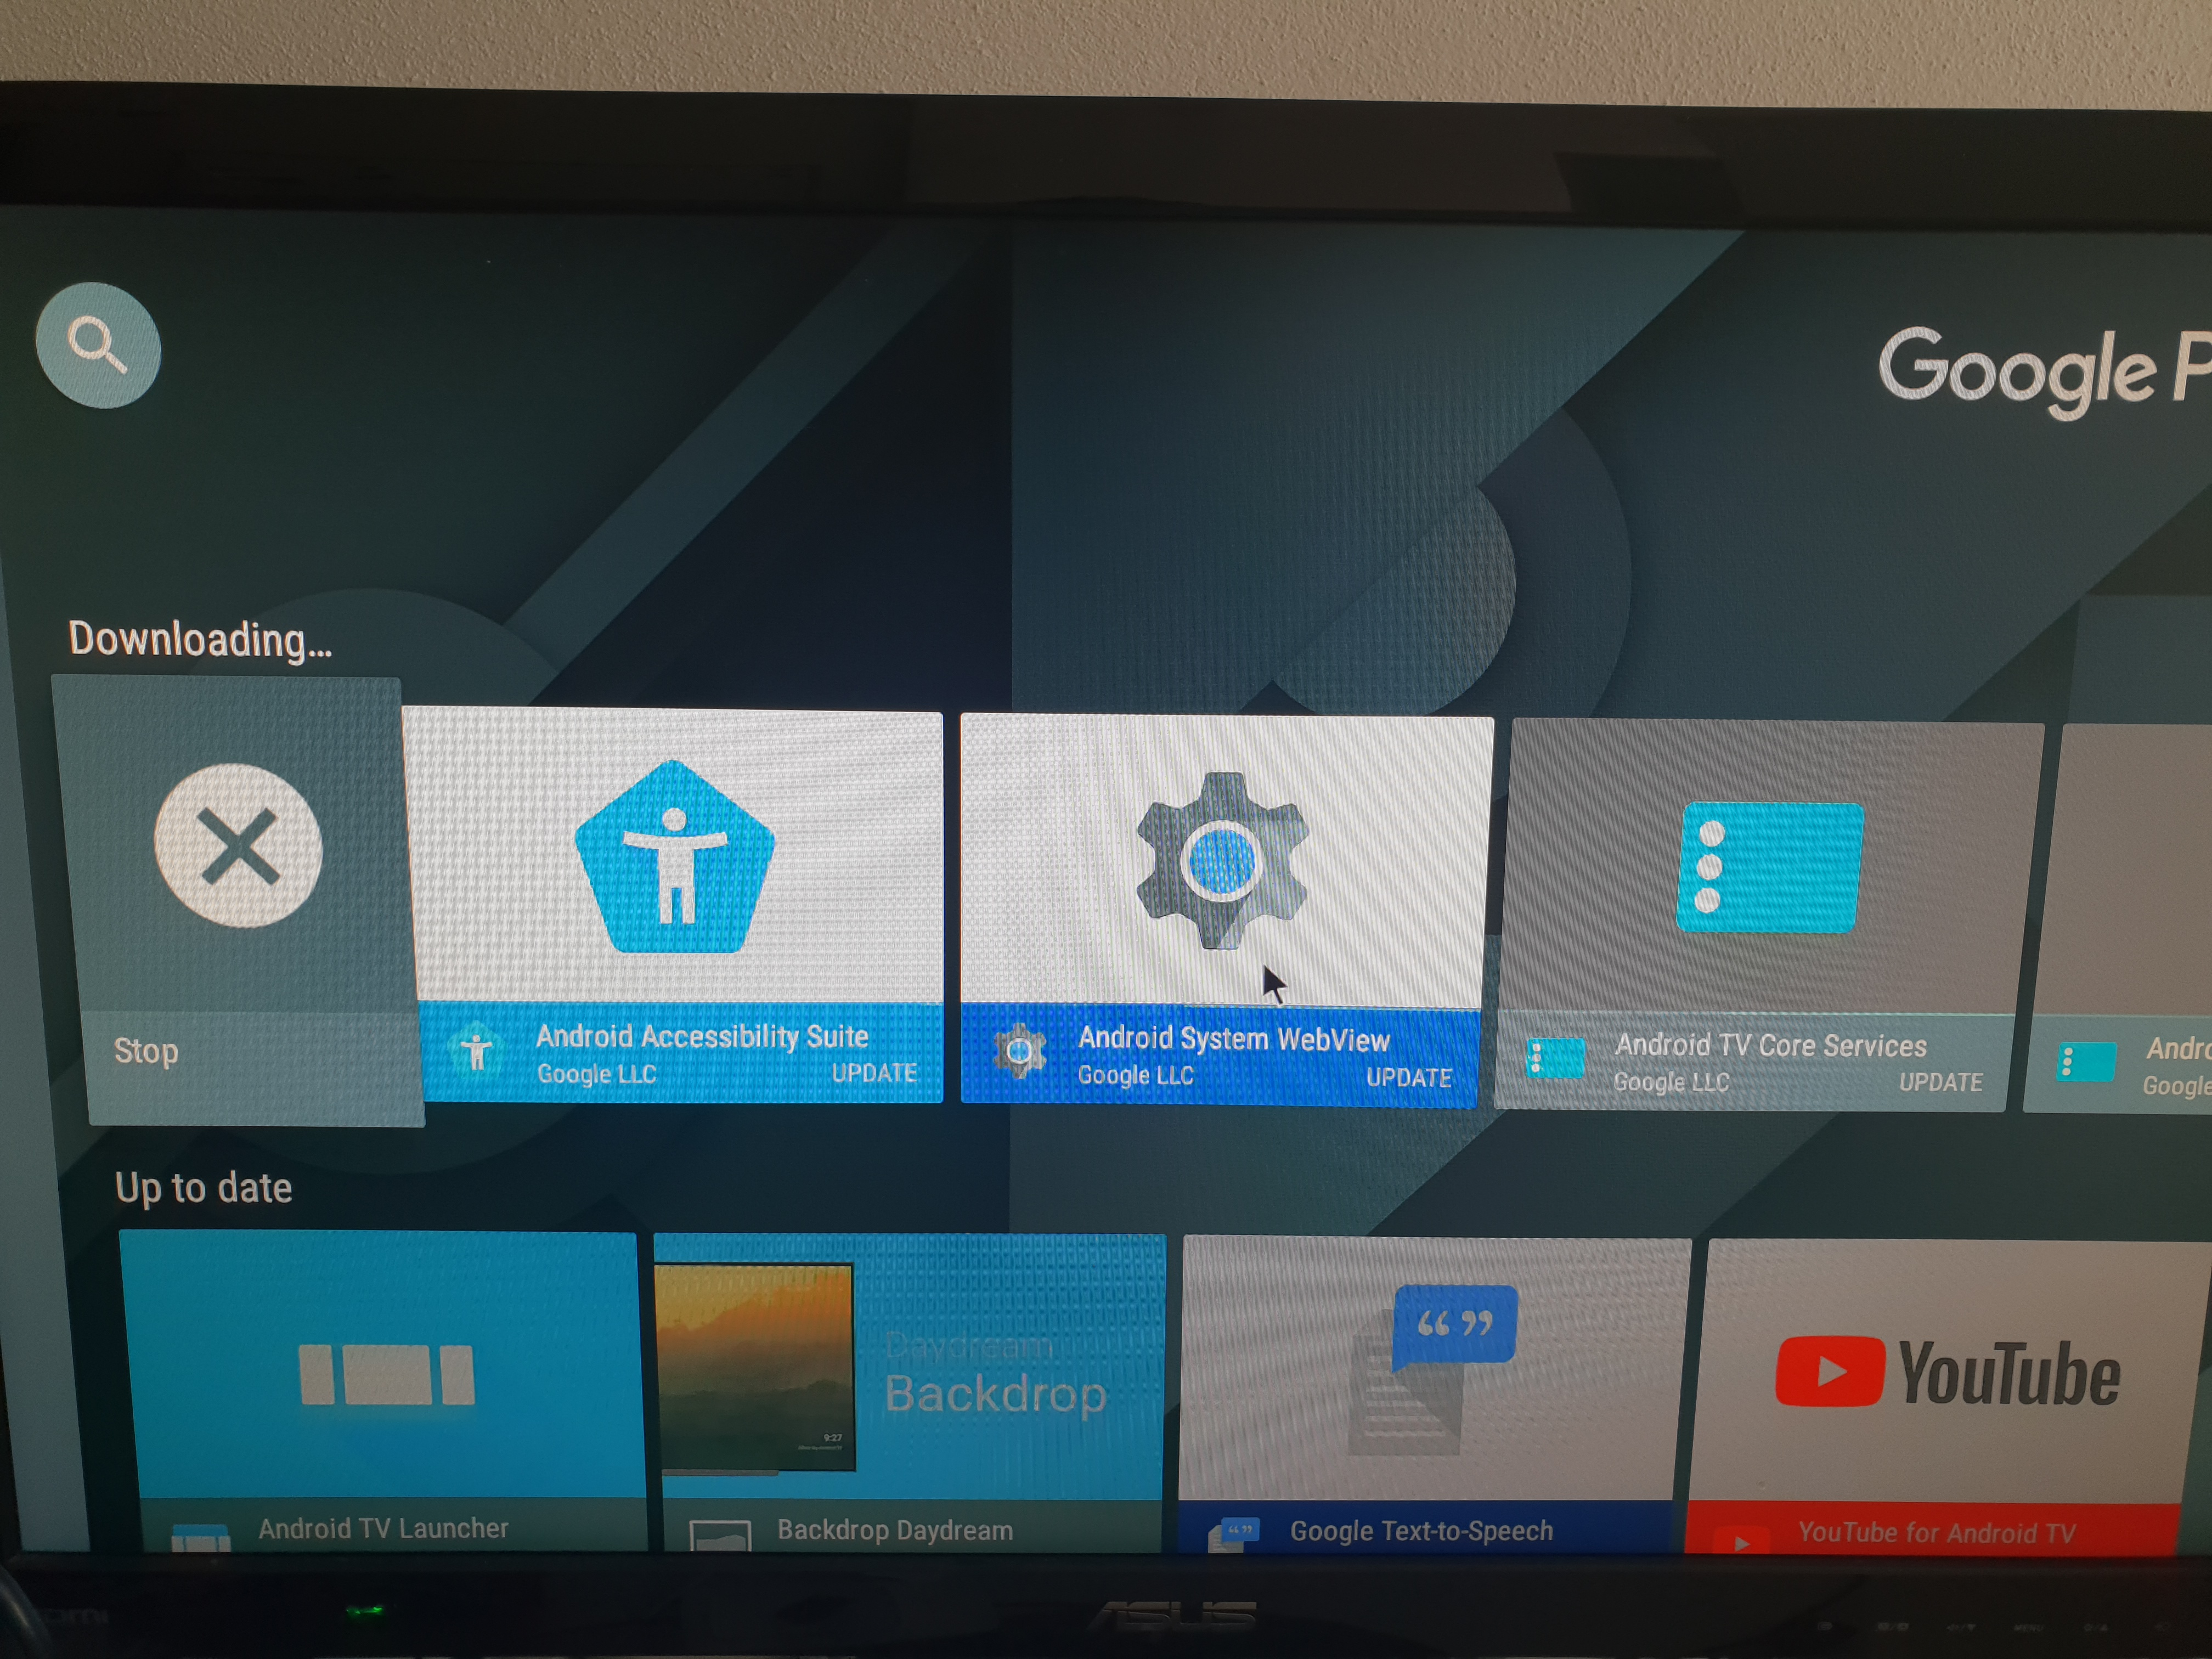 ROM][Android9 0] Android TV firmware released - Andoid